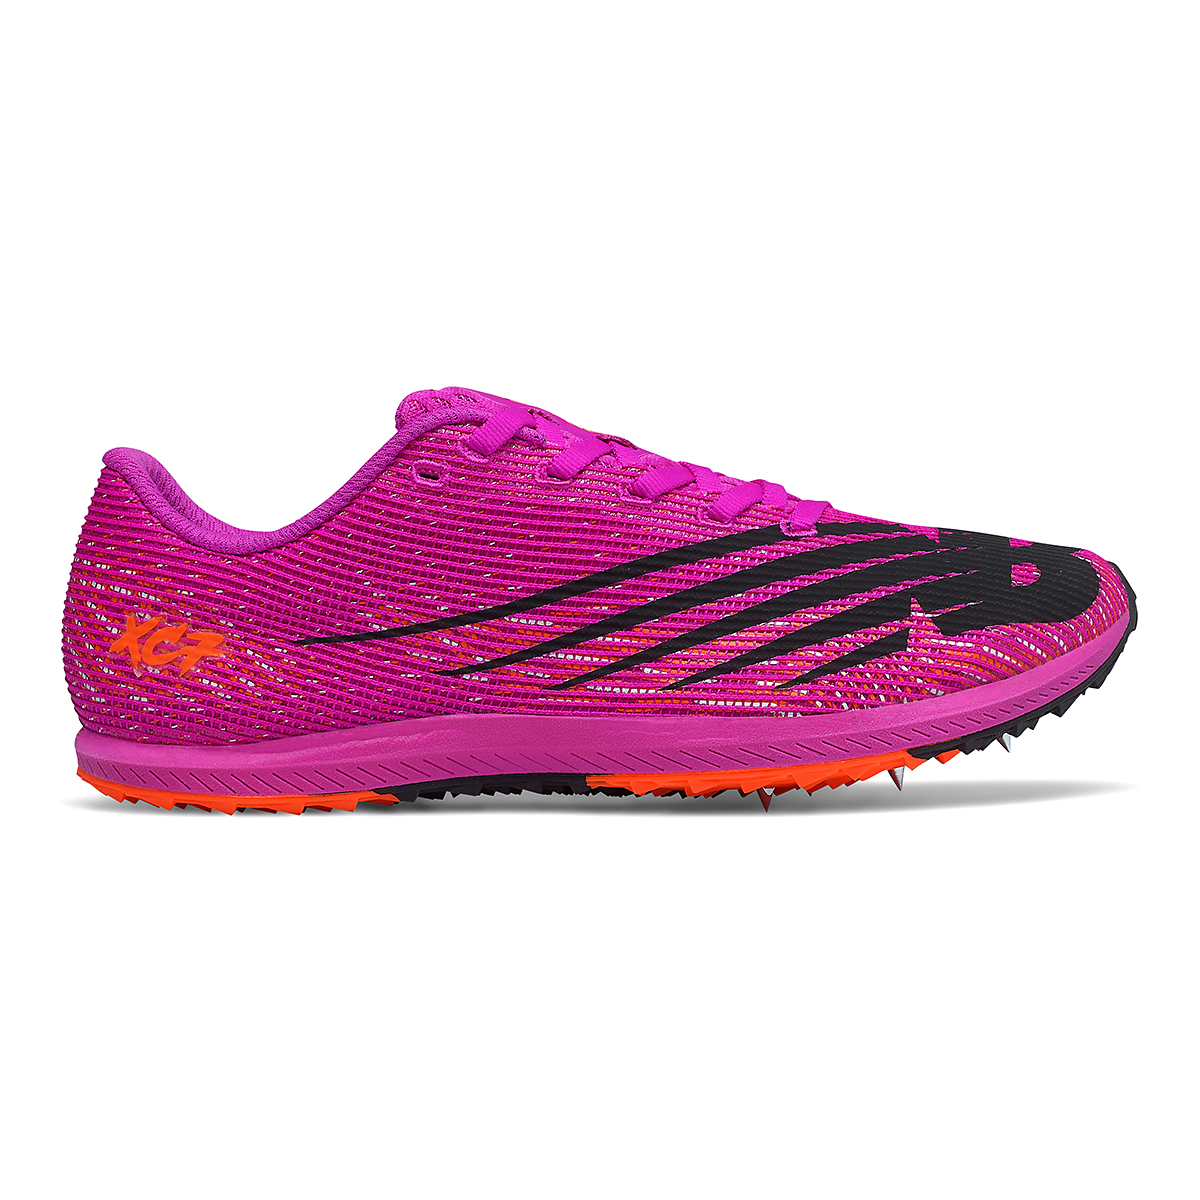 Women's New Balance XC Seven v3 Track Spikes - Color: Poison Berry/Dynomite - Size: 5.5 - Width: Regular, Poison Berry/Dynomite, large, image 1